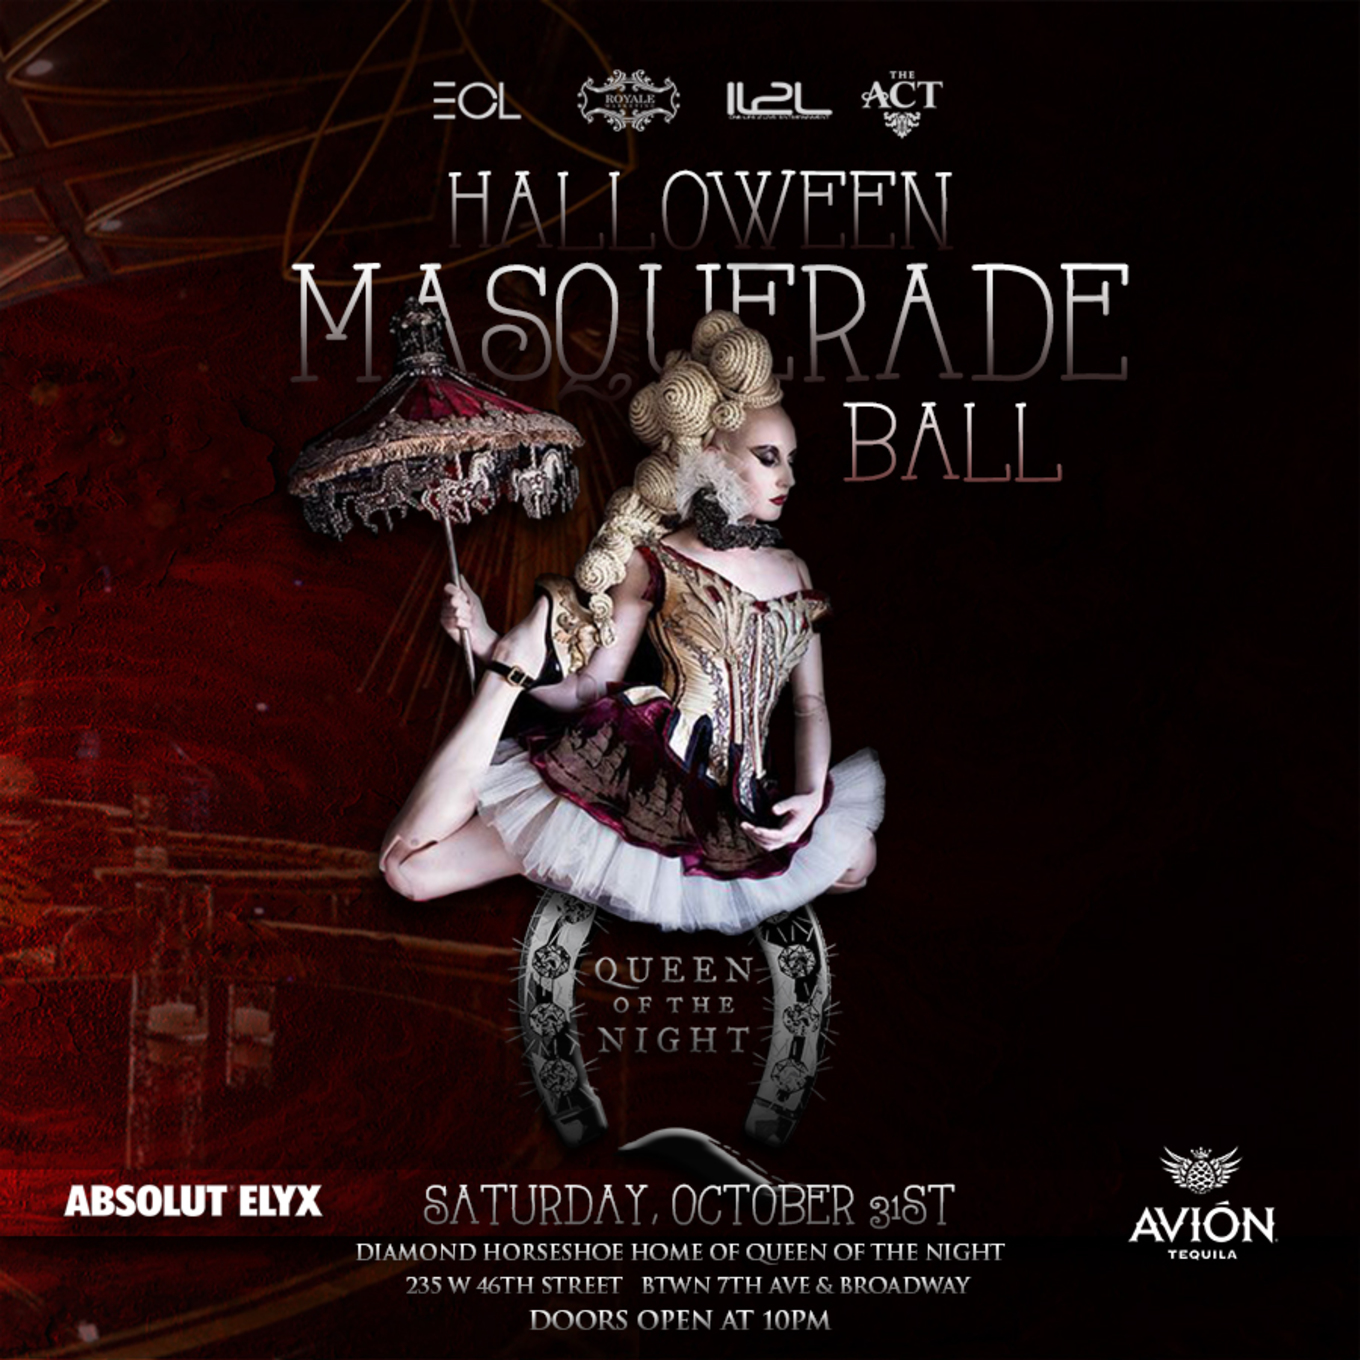 d915b0262cca Queen of the Night: A Halloween Masquerade Ball - Tickets - Diamond  Horseshoe, Home of Queen of the Night, New York, NY - October 31, 2015